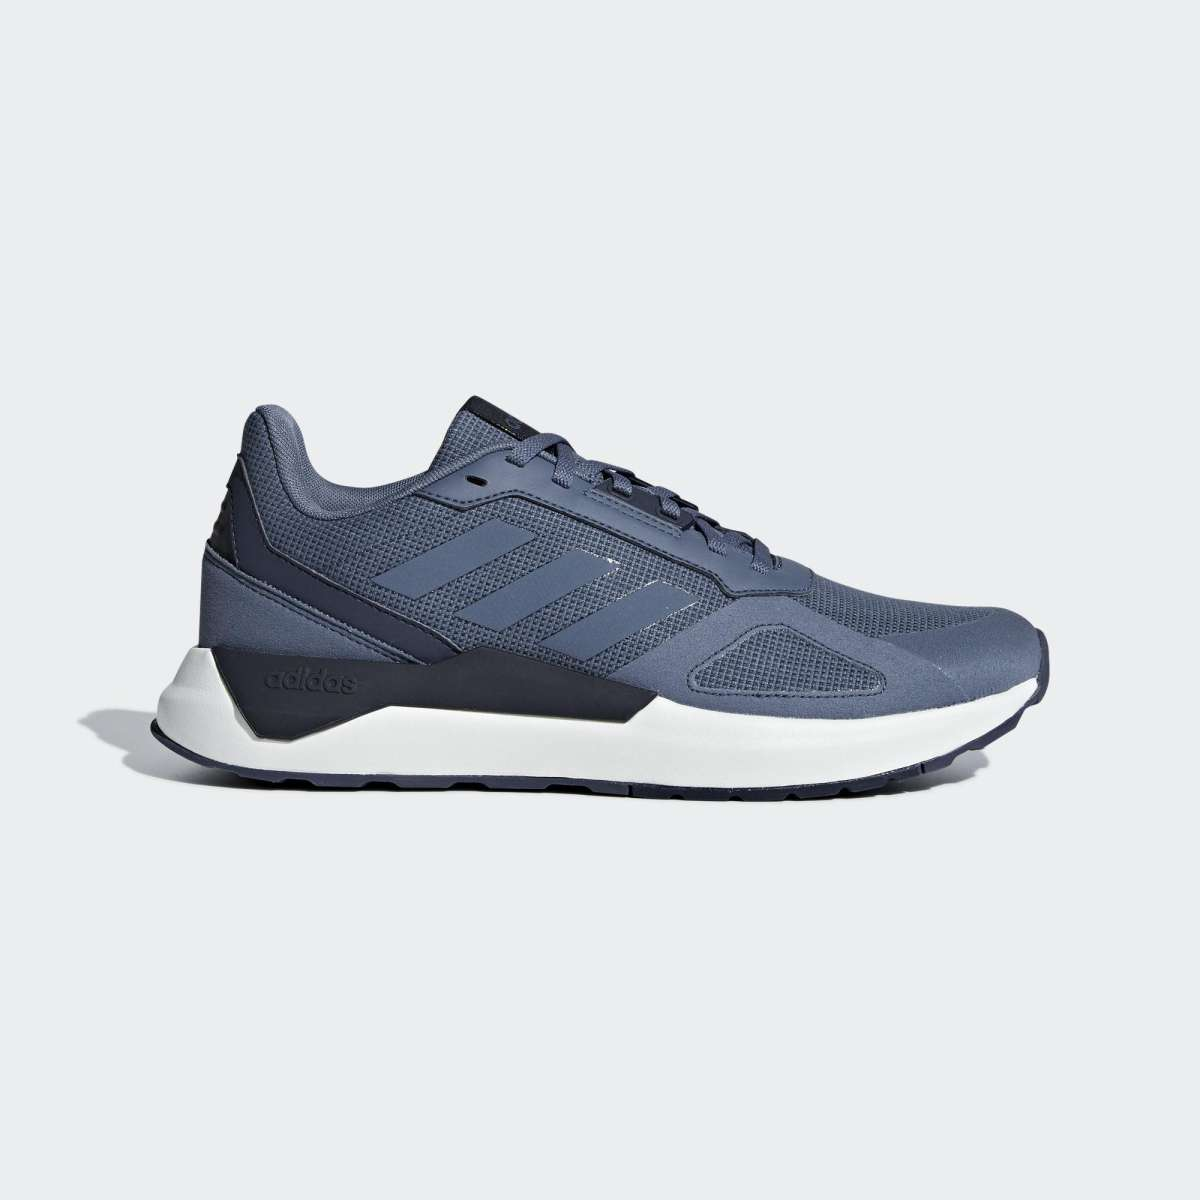 Adidas Ink Blue Run 80S Running Shoes For Men - BB7830